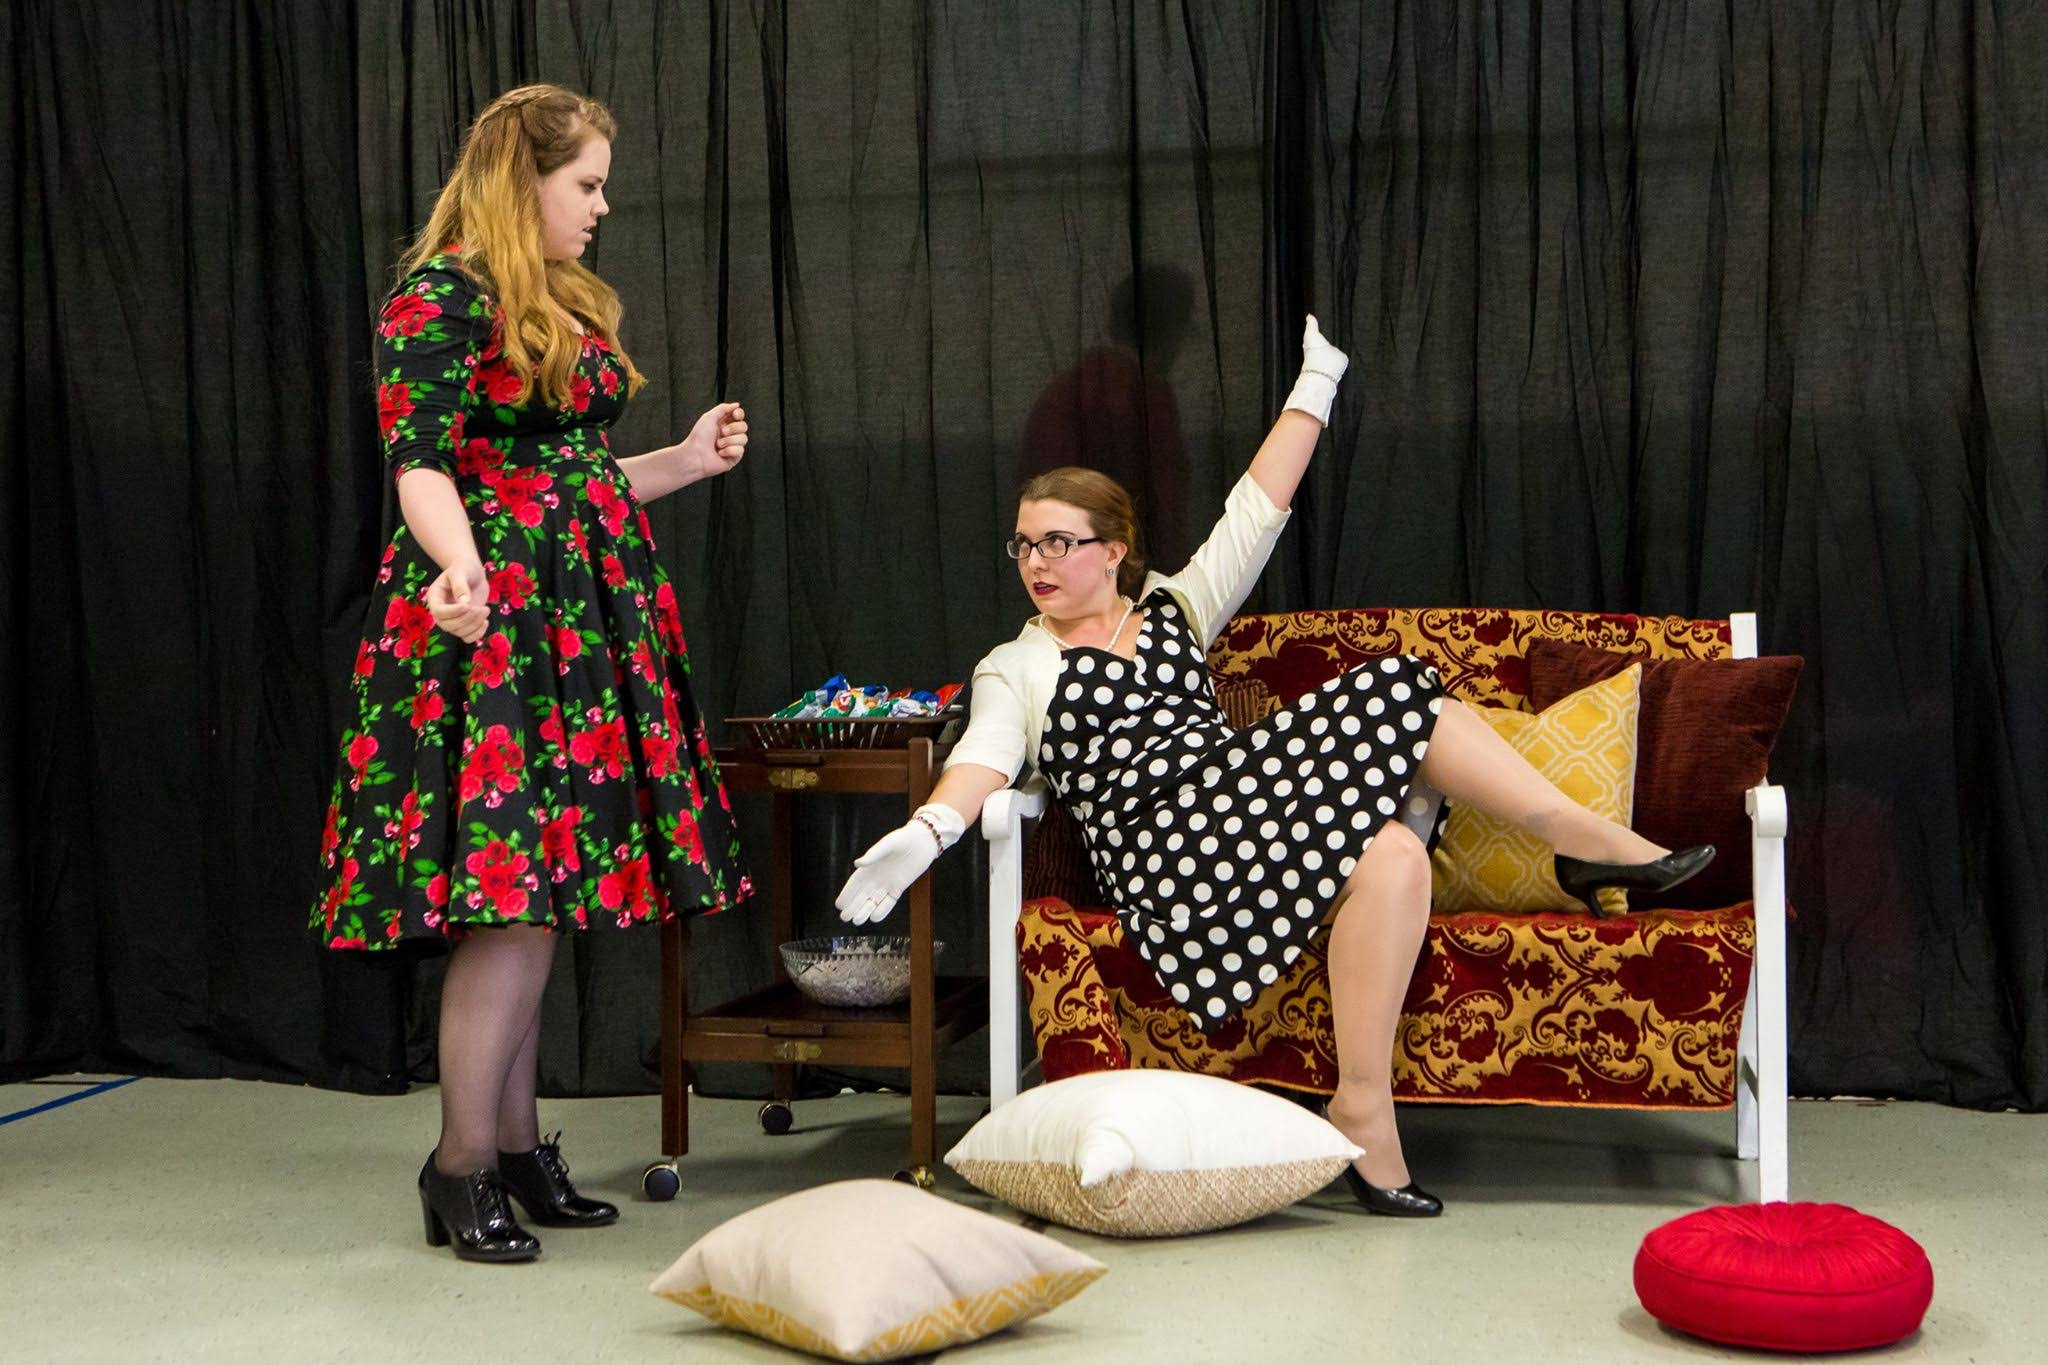 She Stoops to Conquer. Photo by David Harback of Harback Photography.